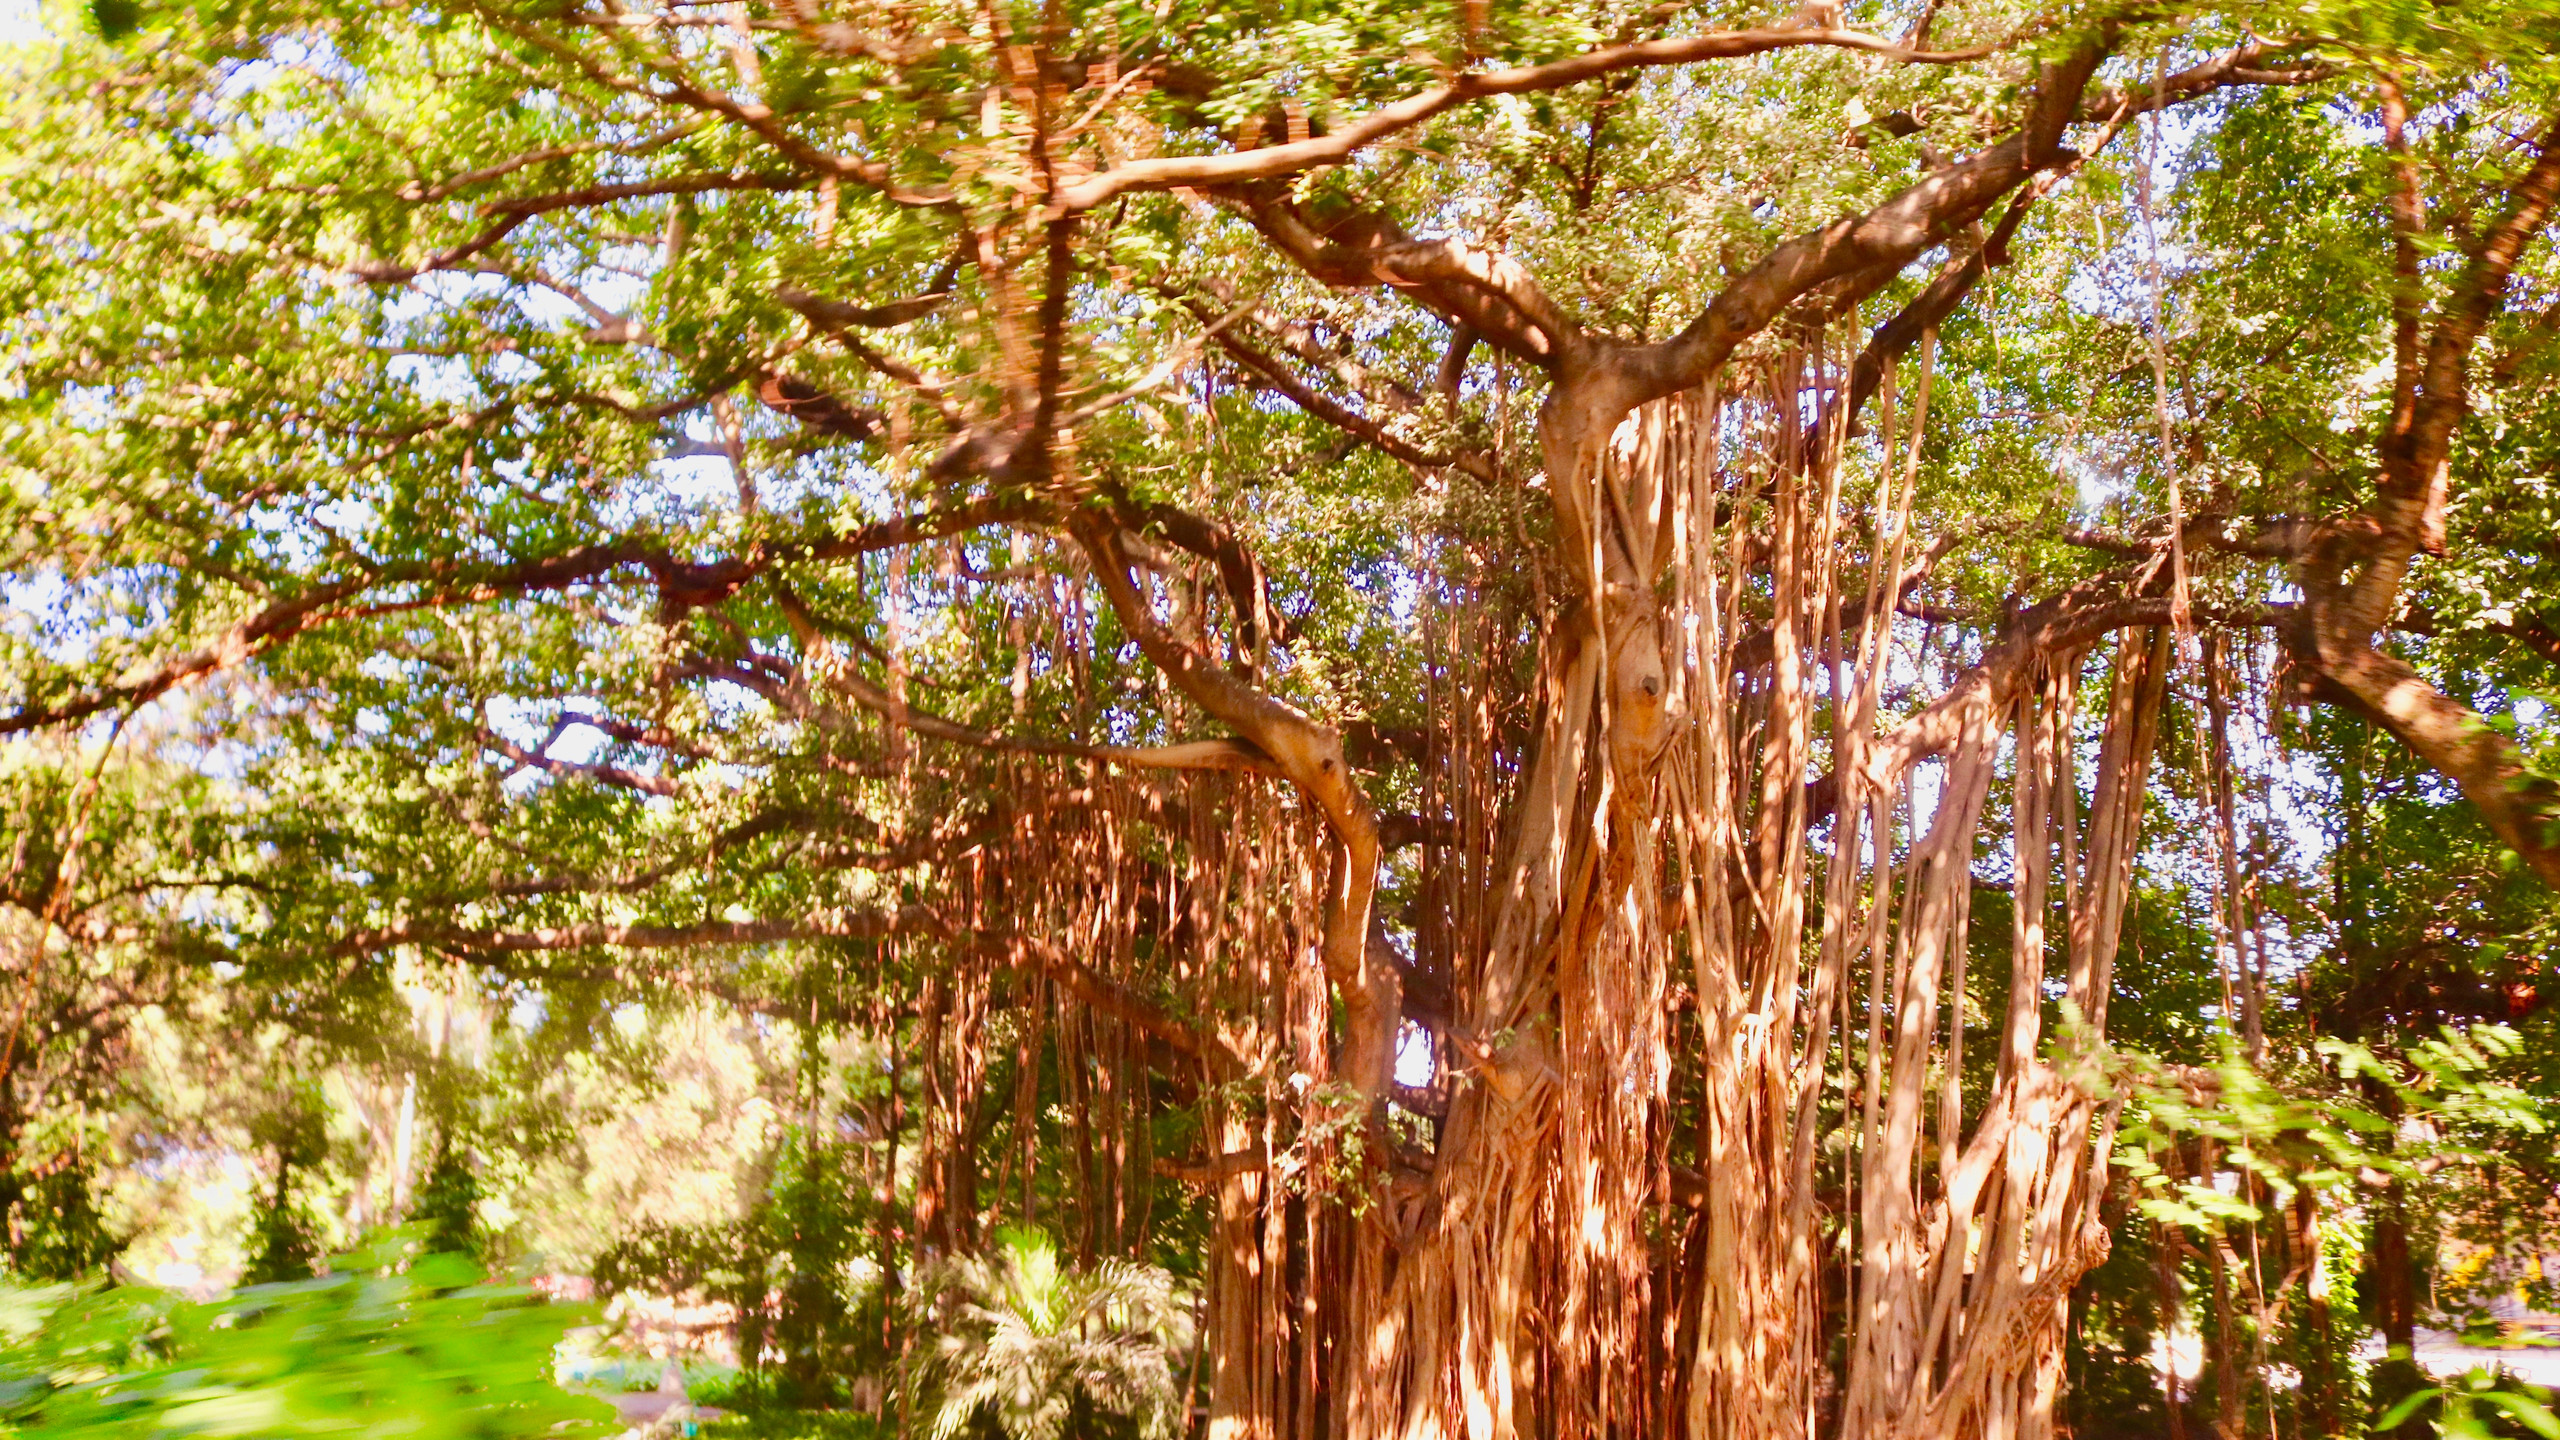 Large Banyan trees in the Havana Forest.